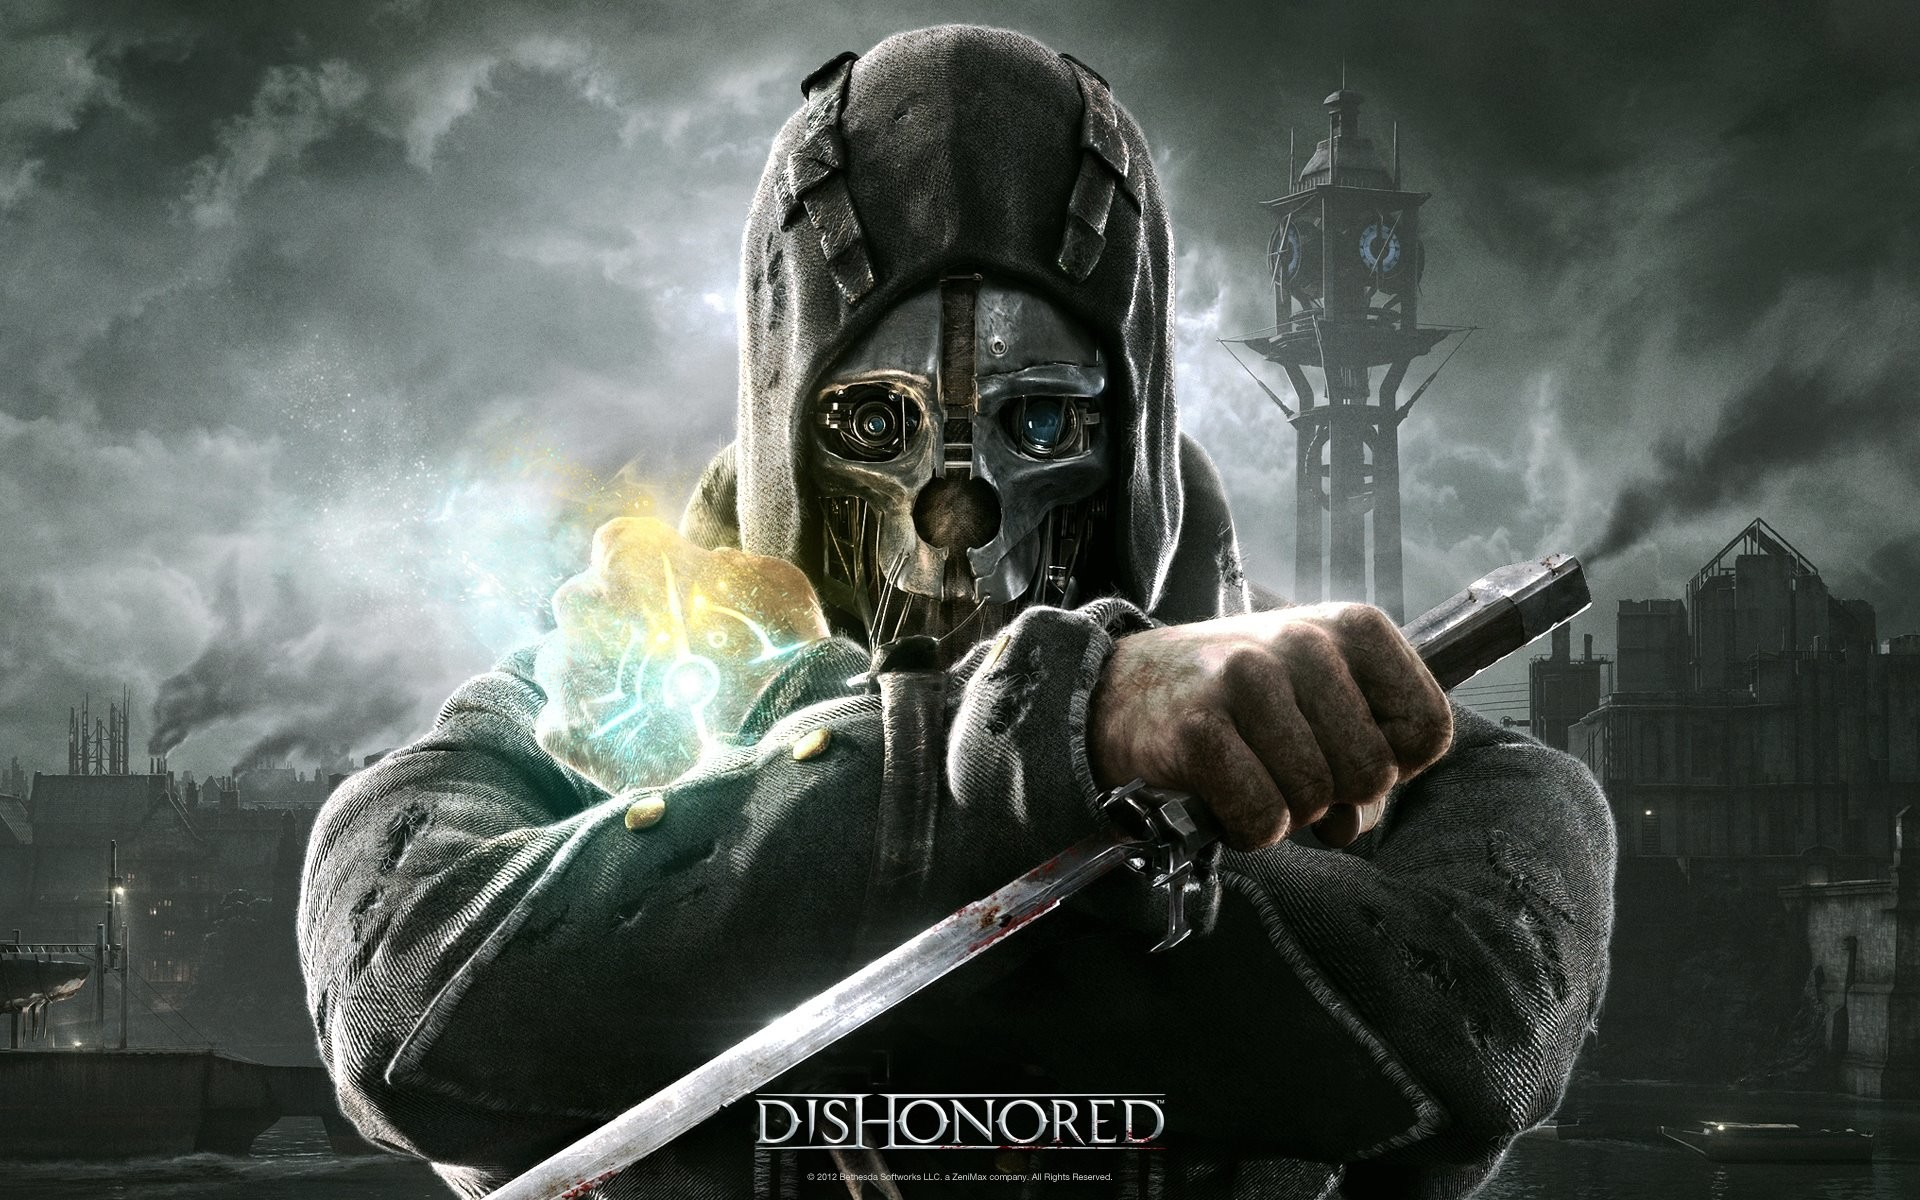 VGA12: Dishonored Wins Best Action Adventure Game